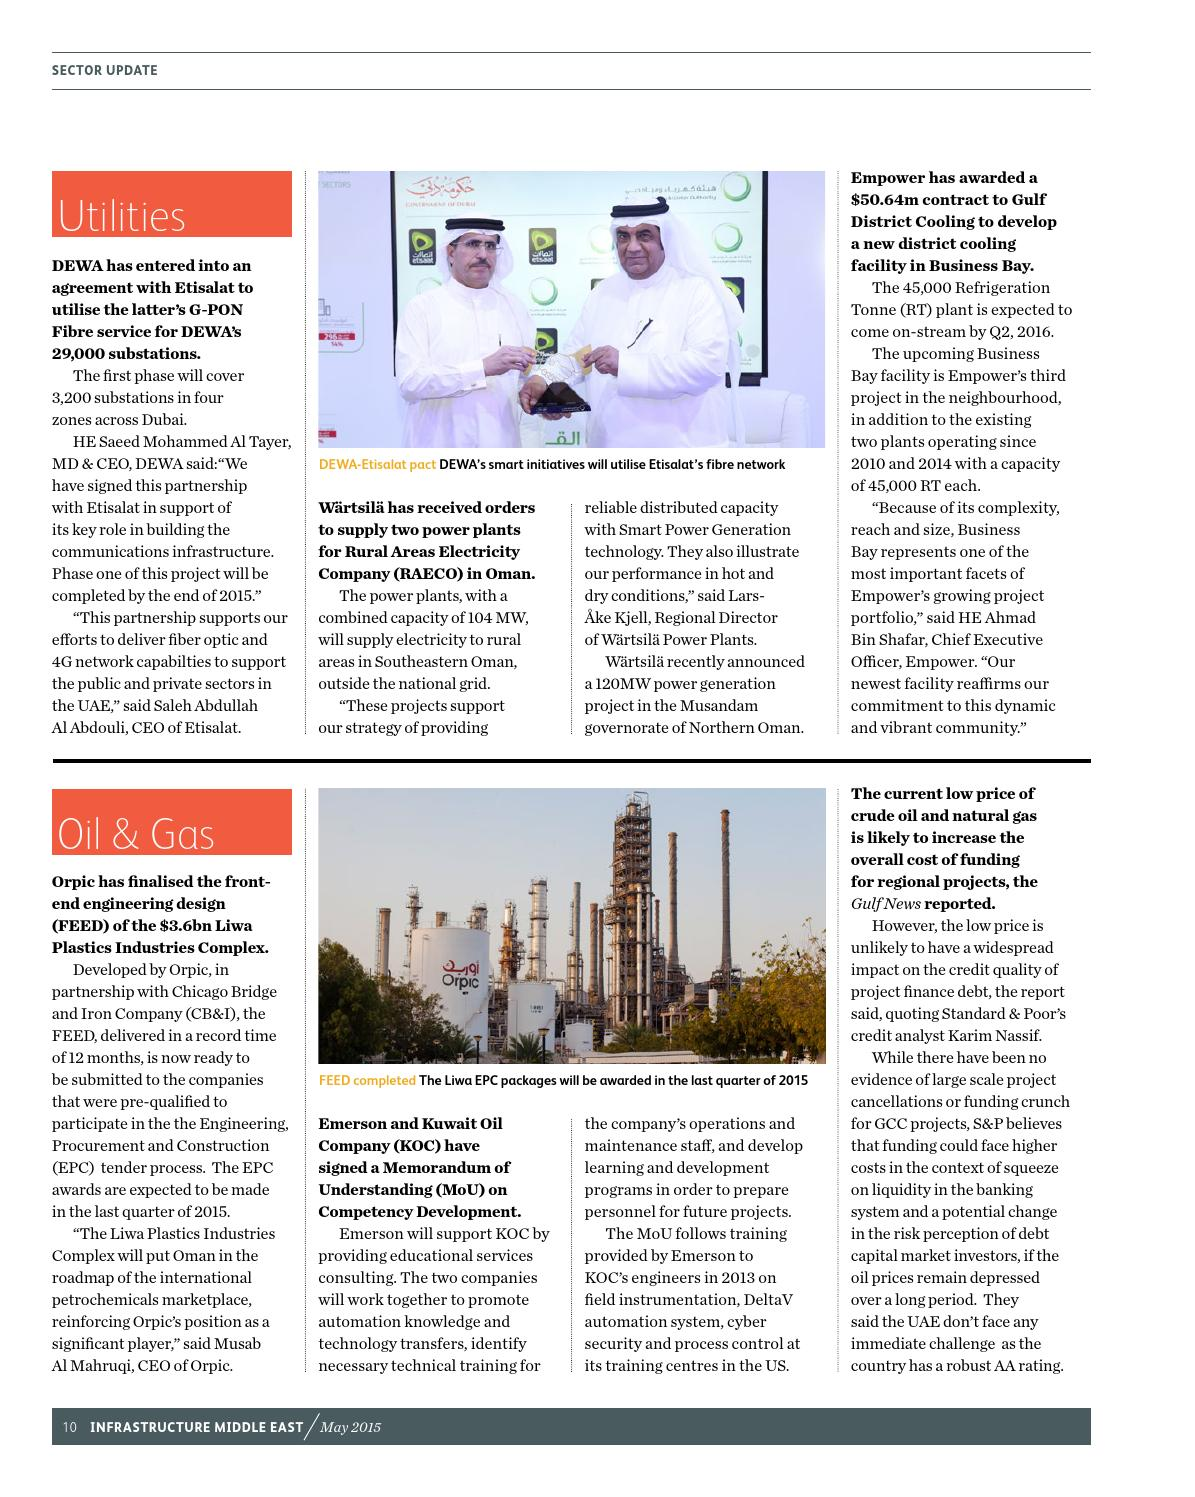 Infrastructure Middle East May 2015 by Infrastructure ME - issuu